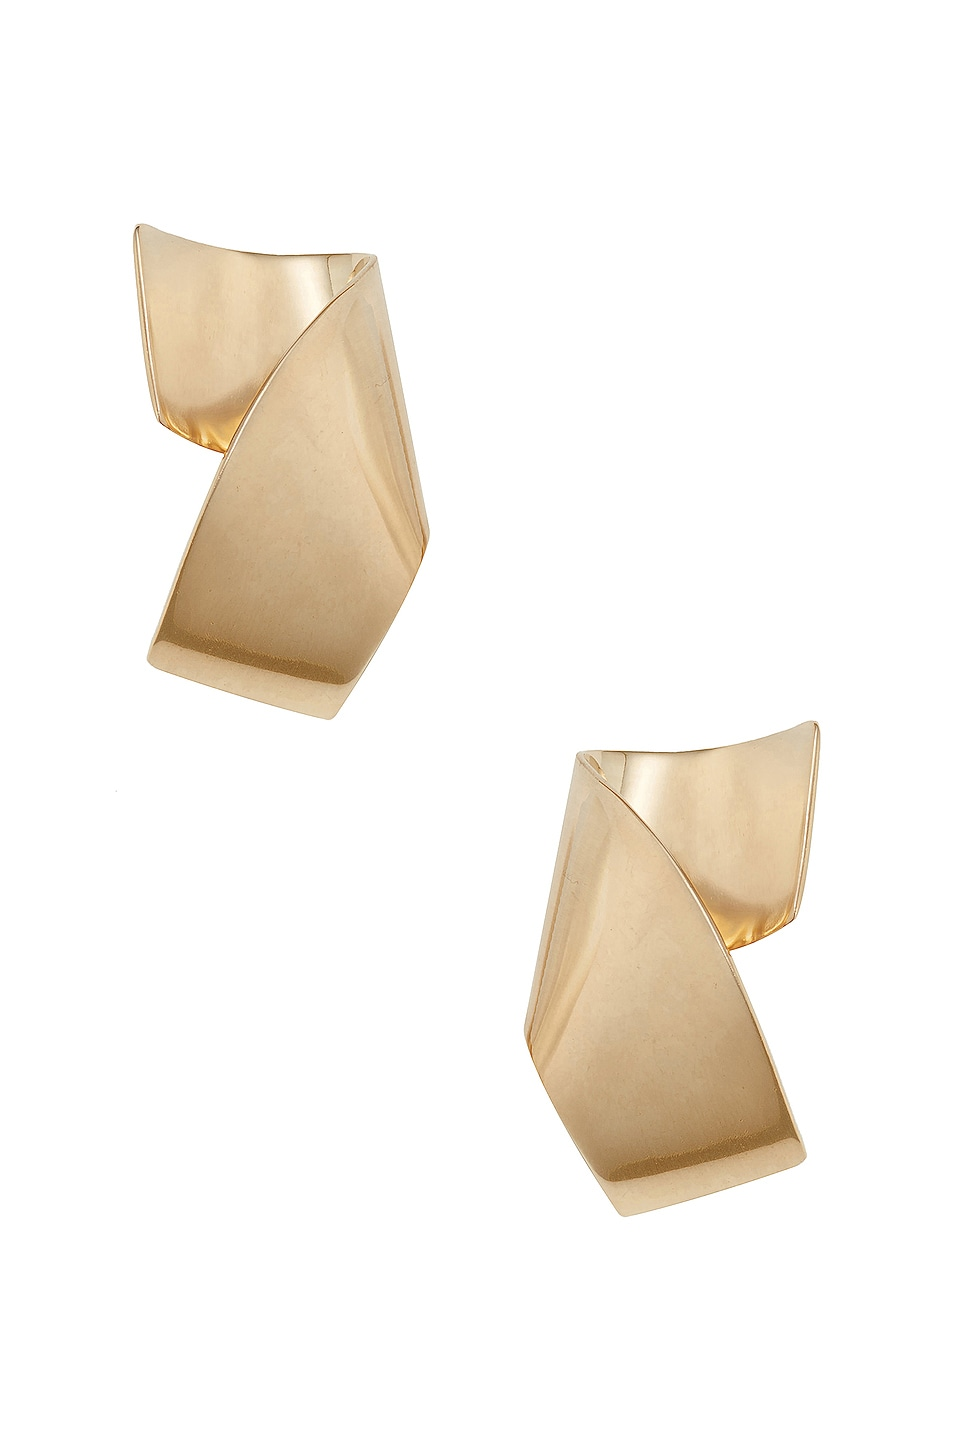 Image 1 of Fay Andrada Siipi Large Earrings in Brass